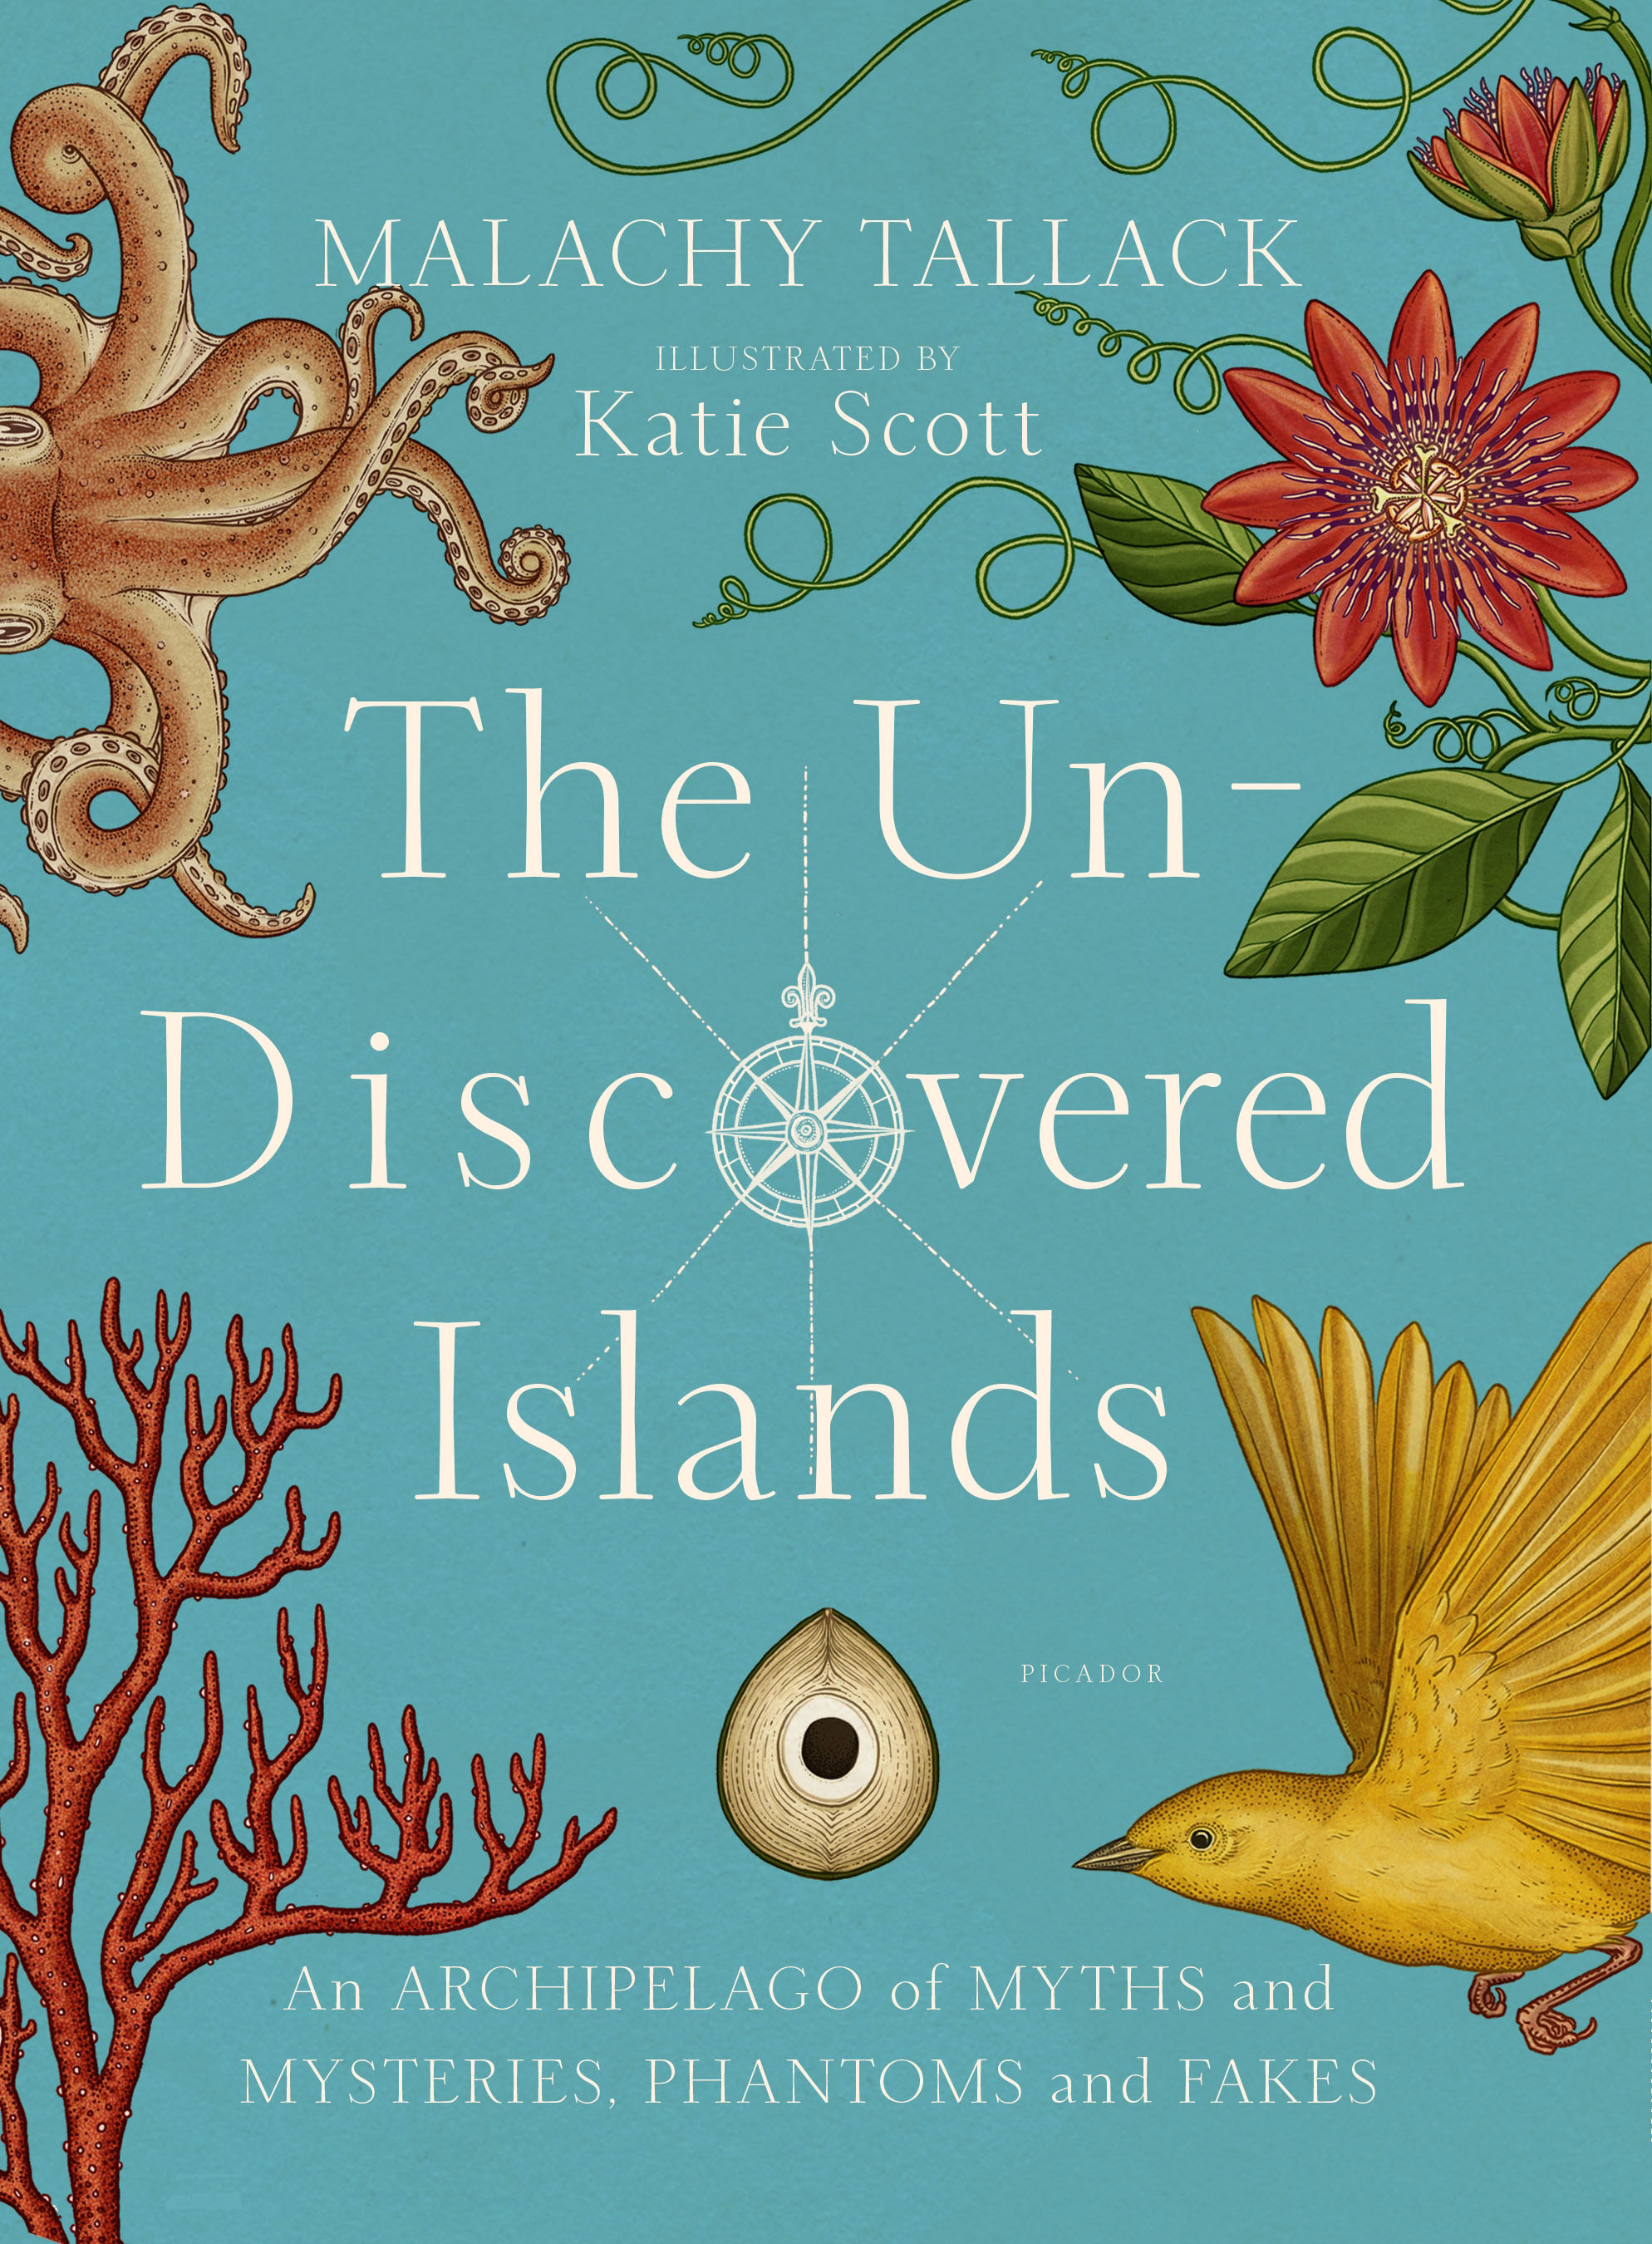 Interview With Sveta Dorosheva Author Of The Land Stone Flowers Un Diagrama Frontal Y Lateral Del Motor Bxer Beetle Discovered Islands By Malachy Tallack Illustrated Katie Scott Be Prepared To Captivated Astounding Tales Two Dozen Once